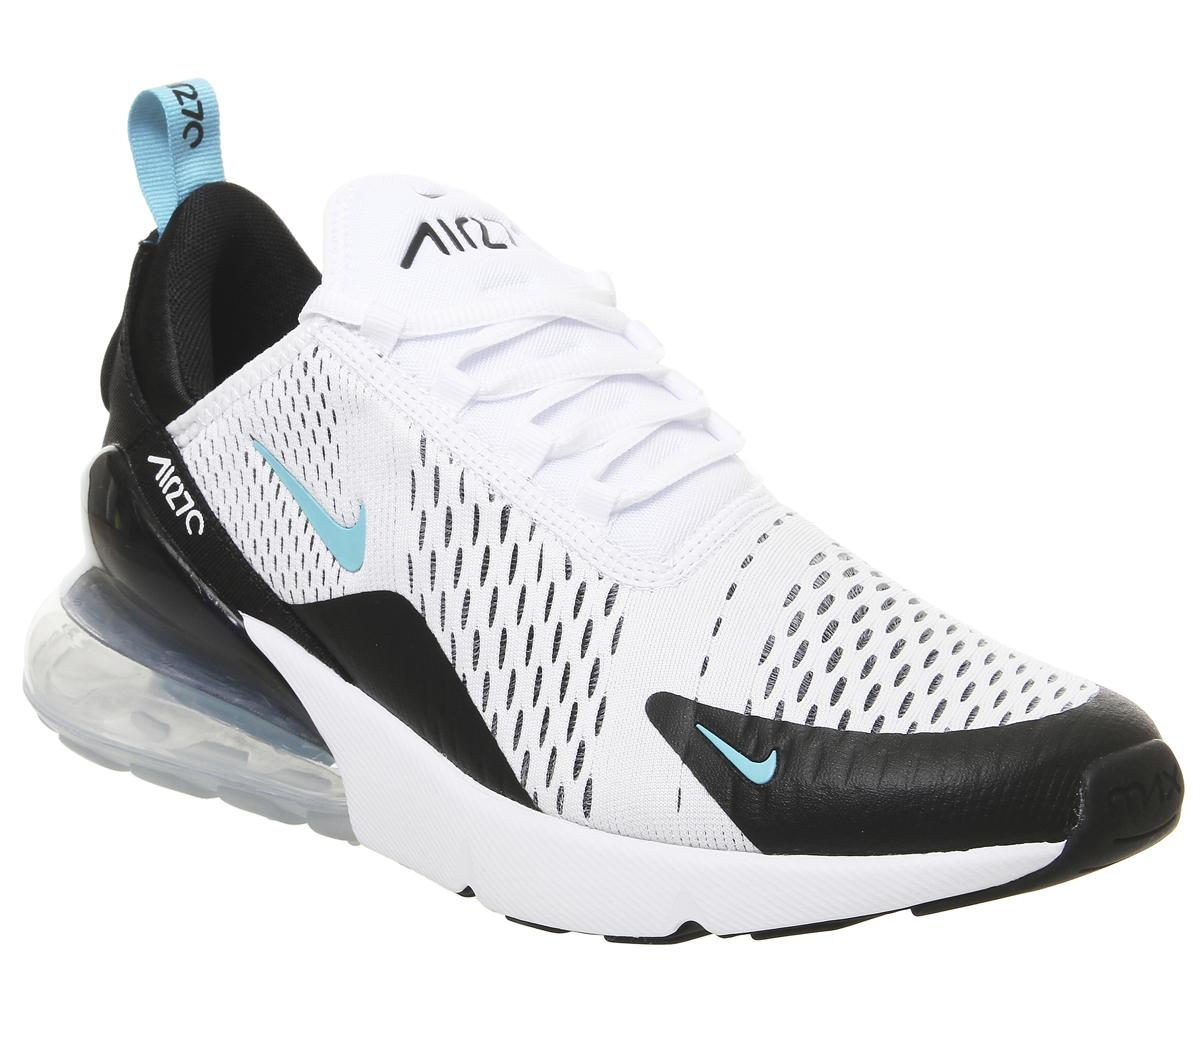 Air Max 270 Trainers